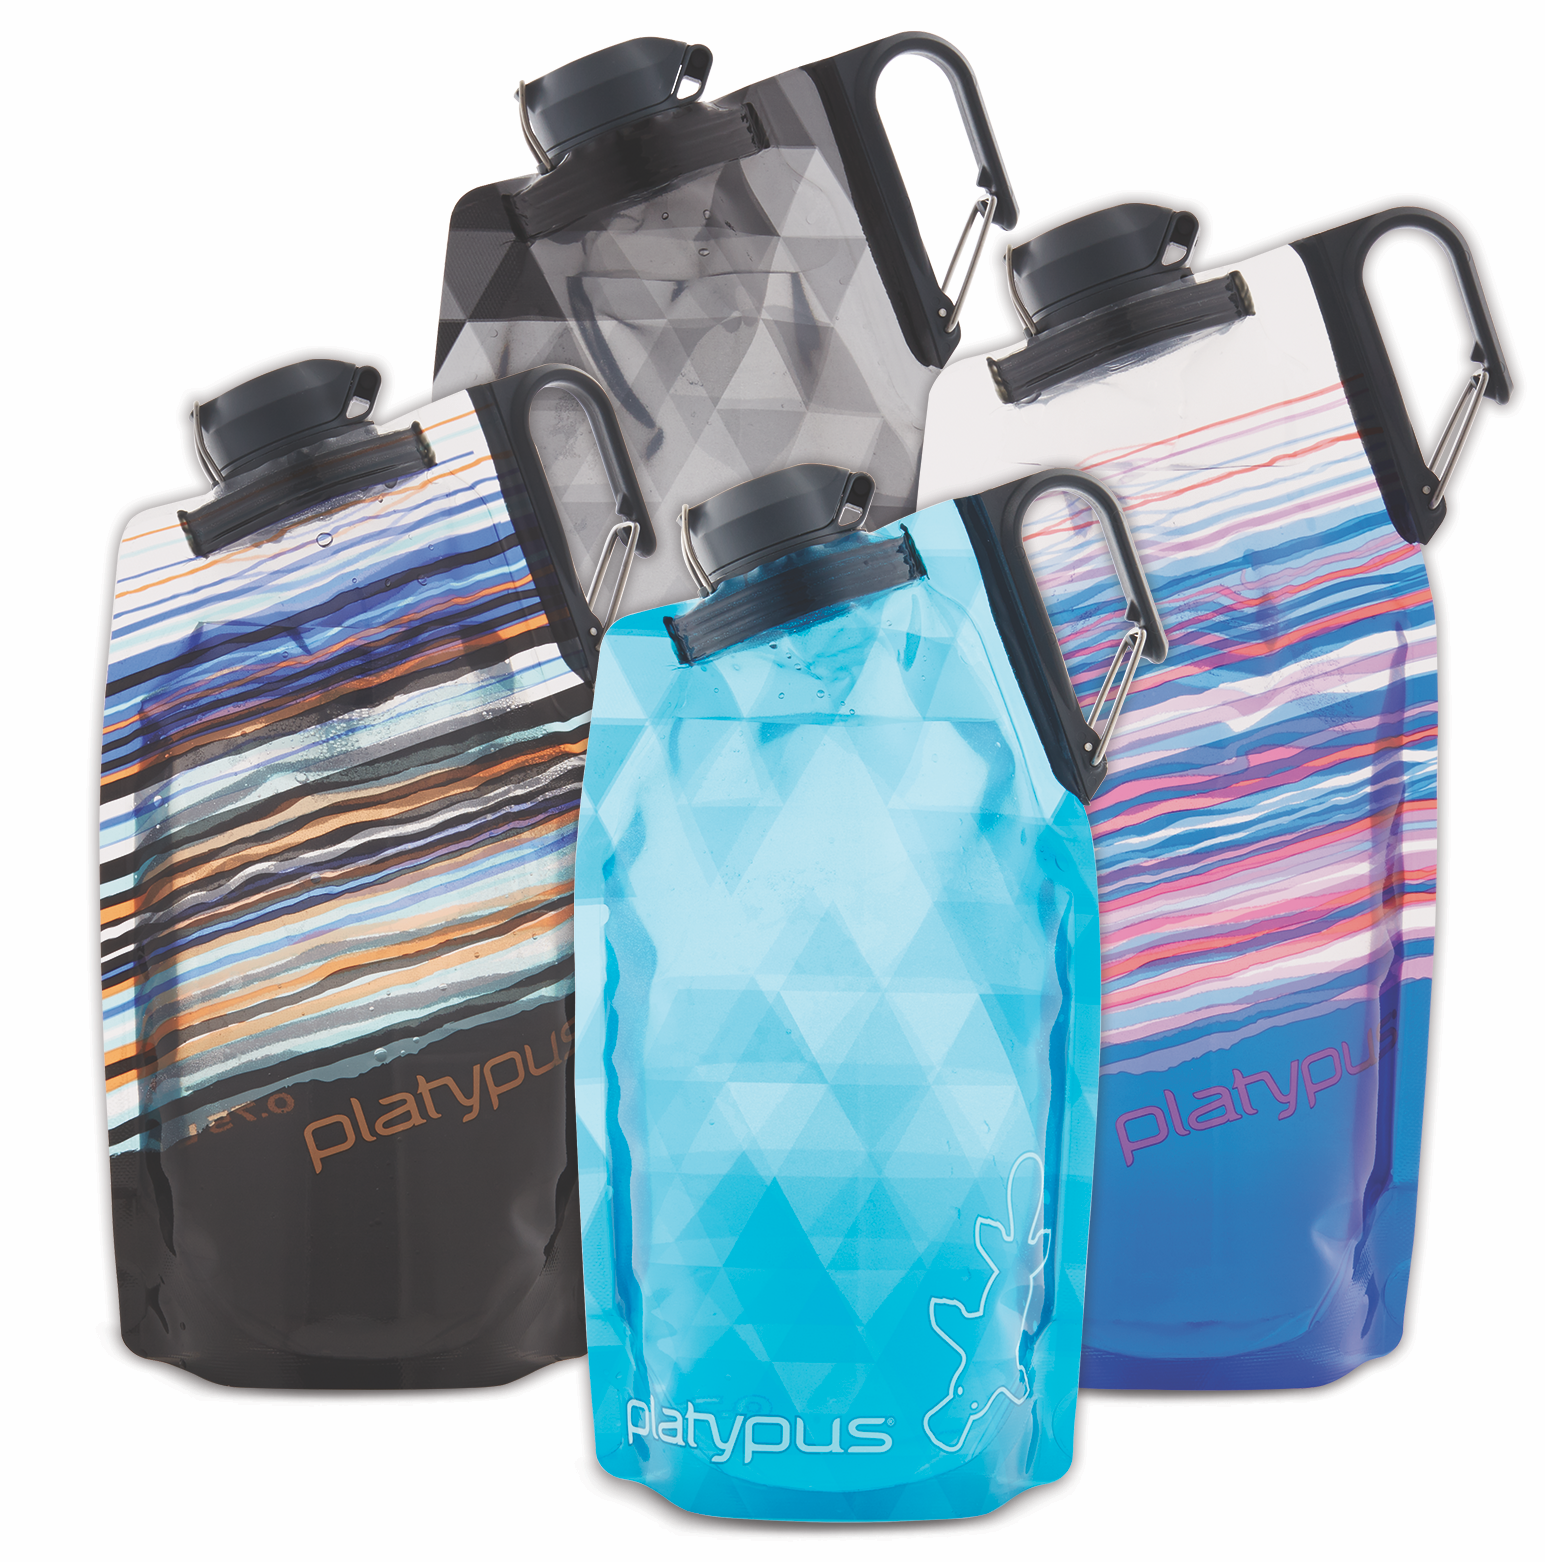 Platypus DuoLock SoftBottle  - $11.95 - $13.95Is this the best stocking stuffer ever? The Platypus DuoLock Softbottle is a flexible water bottle that can easily be stashed in a cupboard, closet, desk, or backpack and then filled and carried for easy use both in the office and on the trail. The best part of these bottles is the DuoLock™, a dual-locking cap for double leak protection so there's no stress about spillage. Plus, the funky patterns makes this sustainably minded gift even more fun to give. BPA-, BPS-, and phthalate-free *and* made in the U.S.A.!